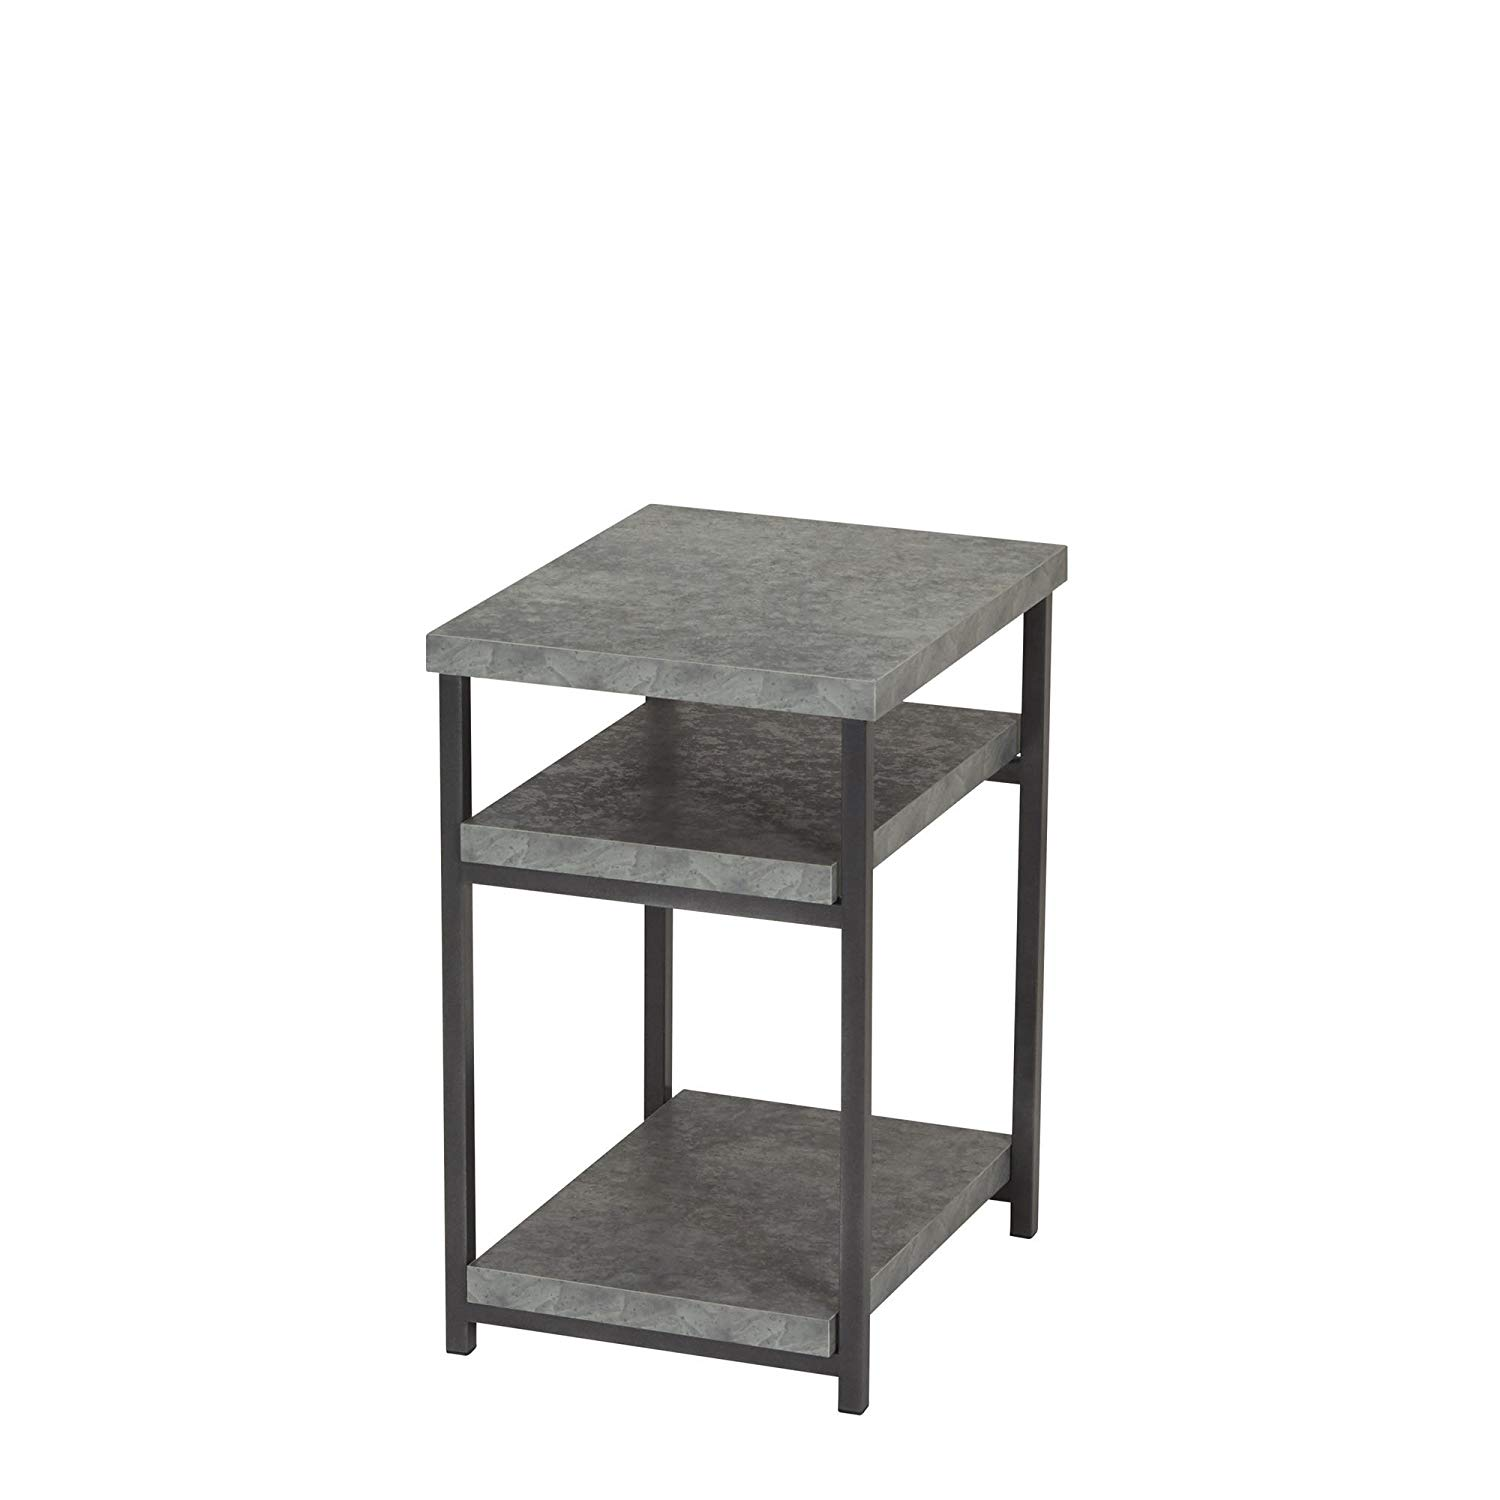 household essentials side table end with room stacking accent shelf for storage faux slate concrete kitchen dining design plans round tablecloths coffee runner large chairs target